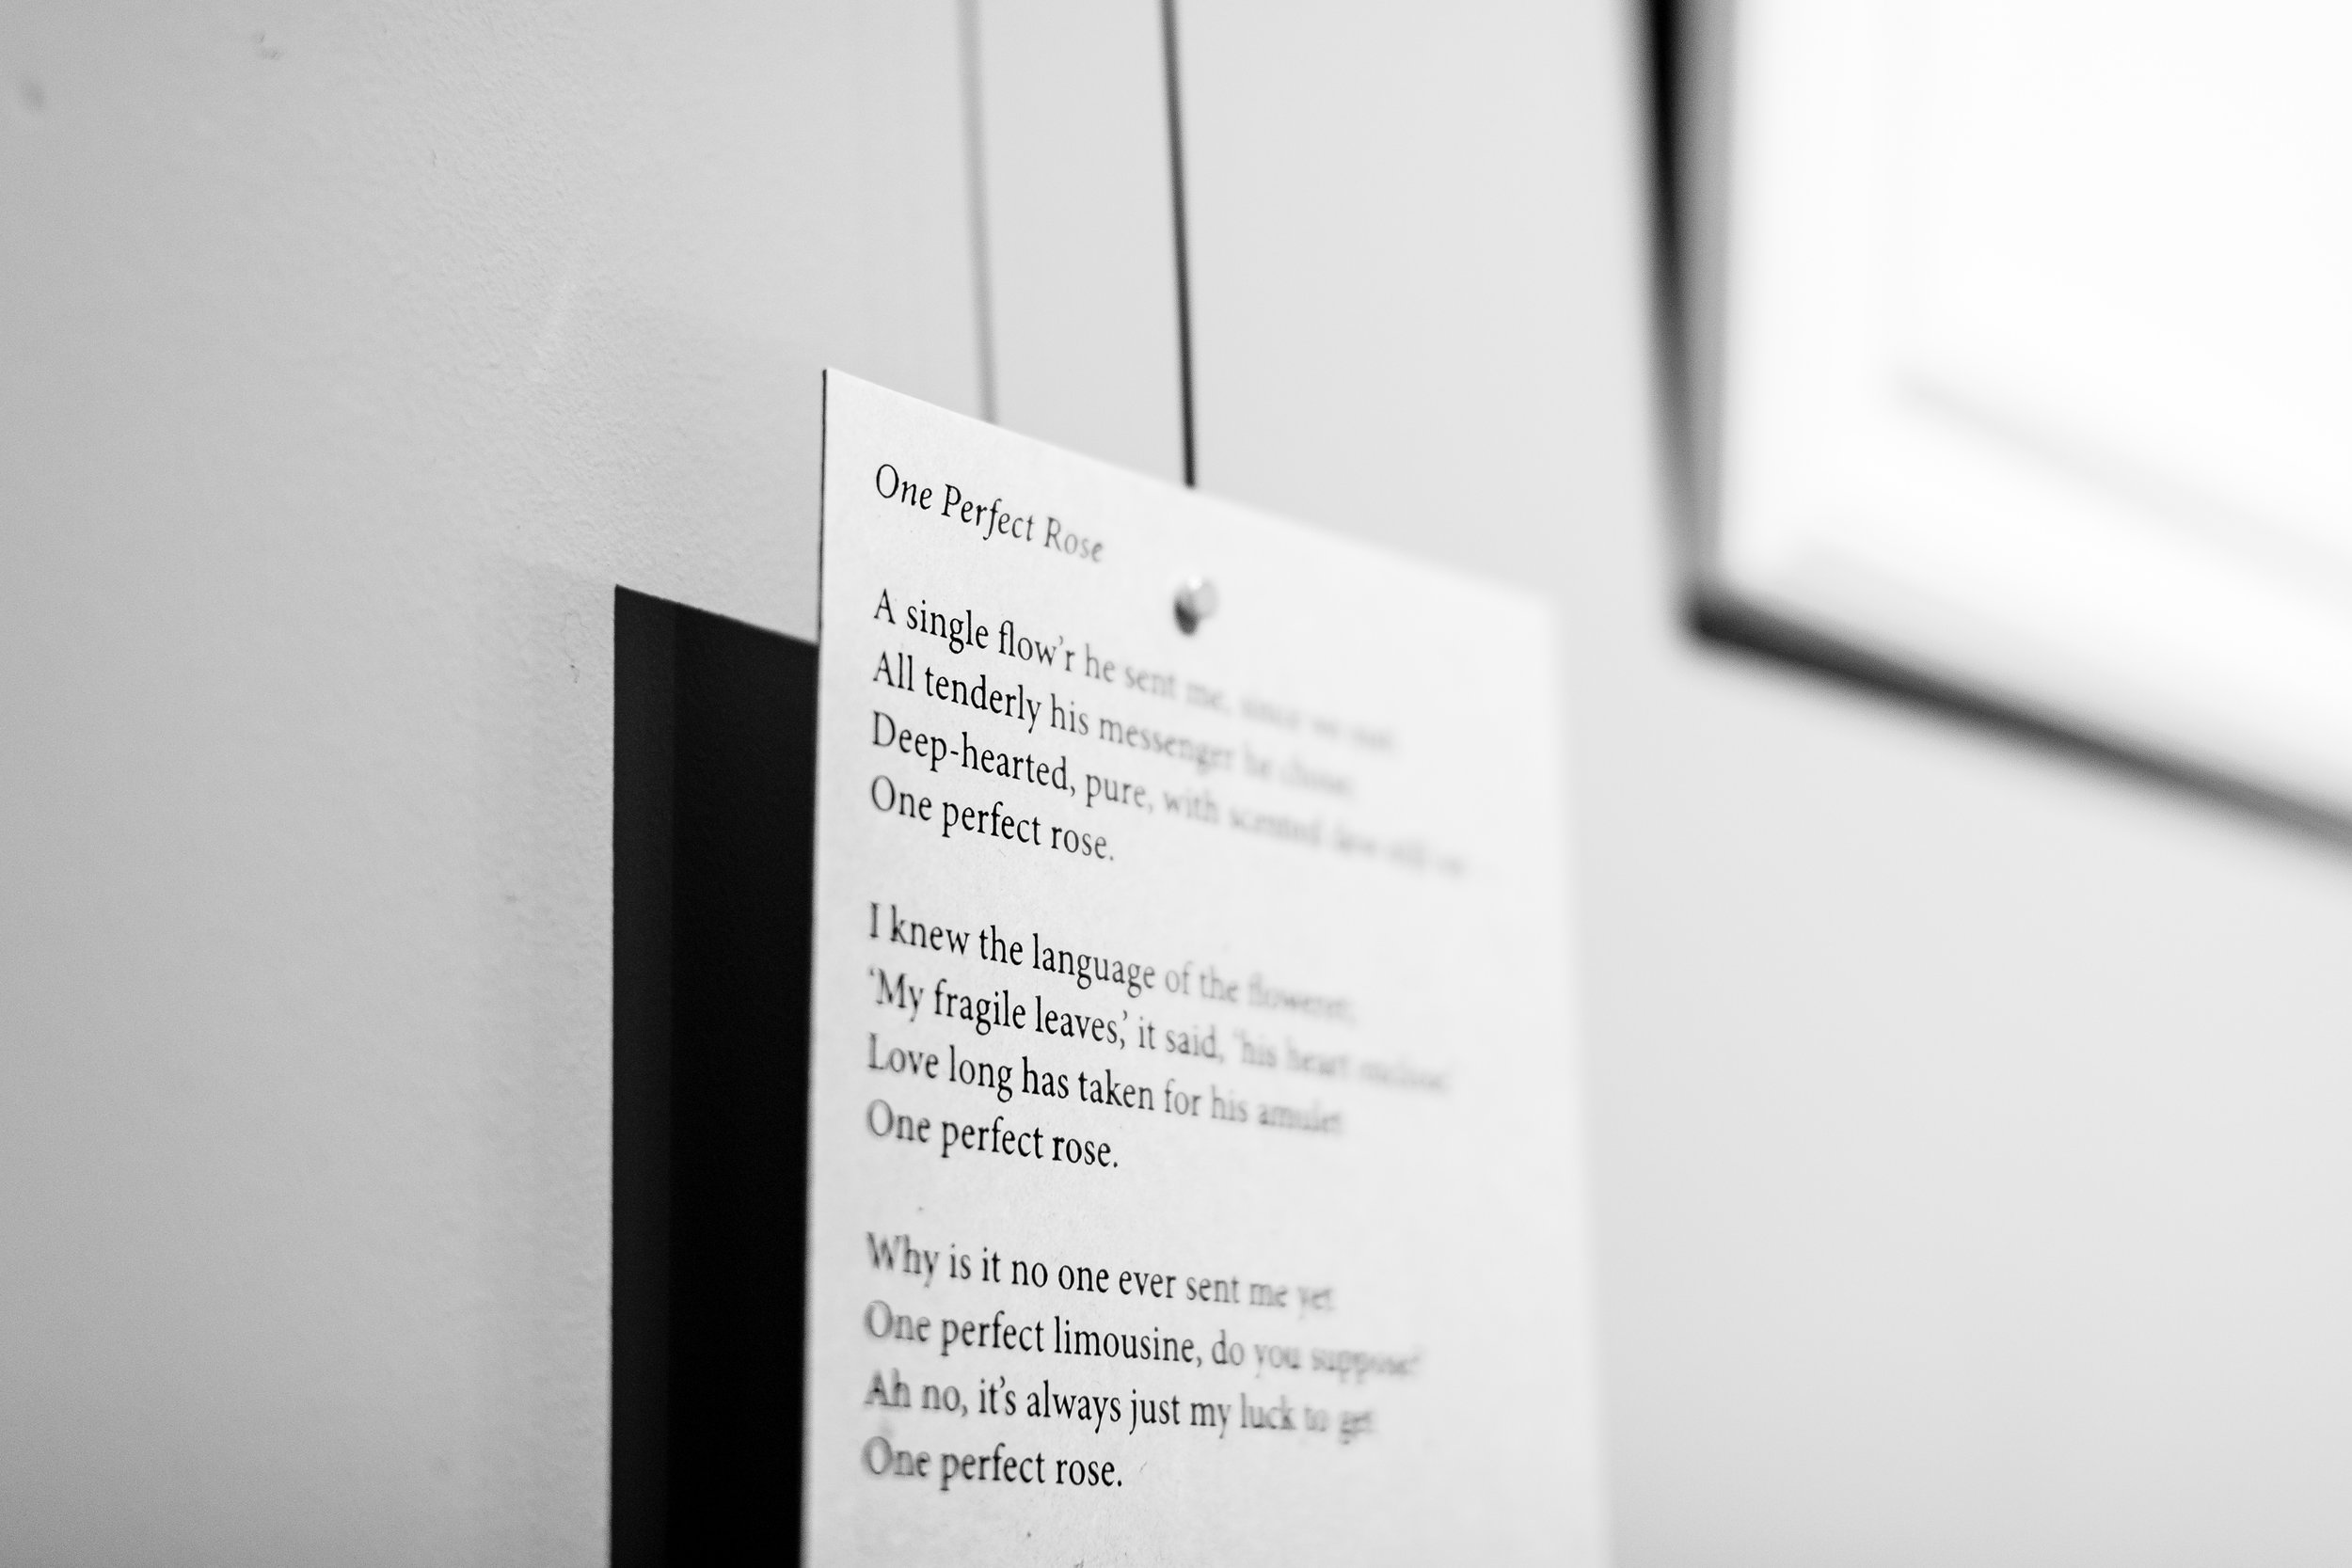 I used poetry cards on the wall hung from metal lines.